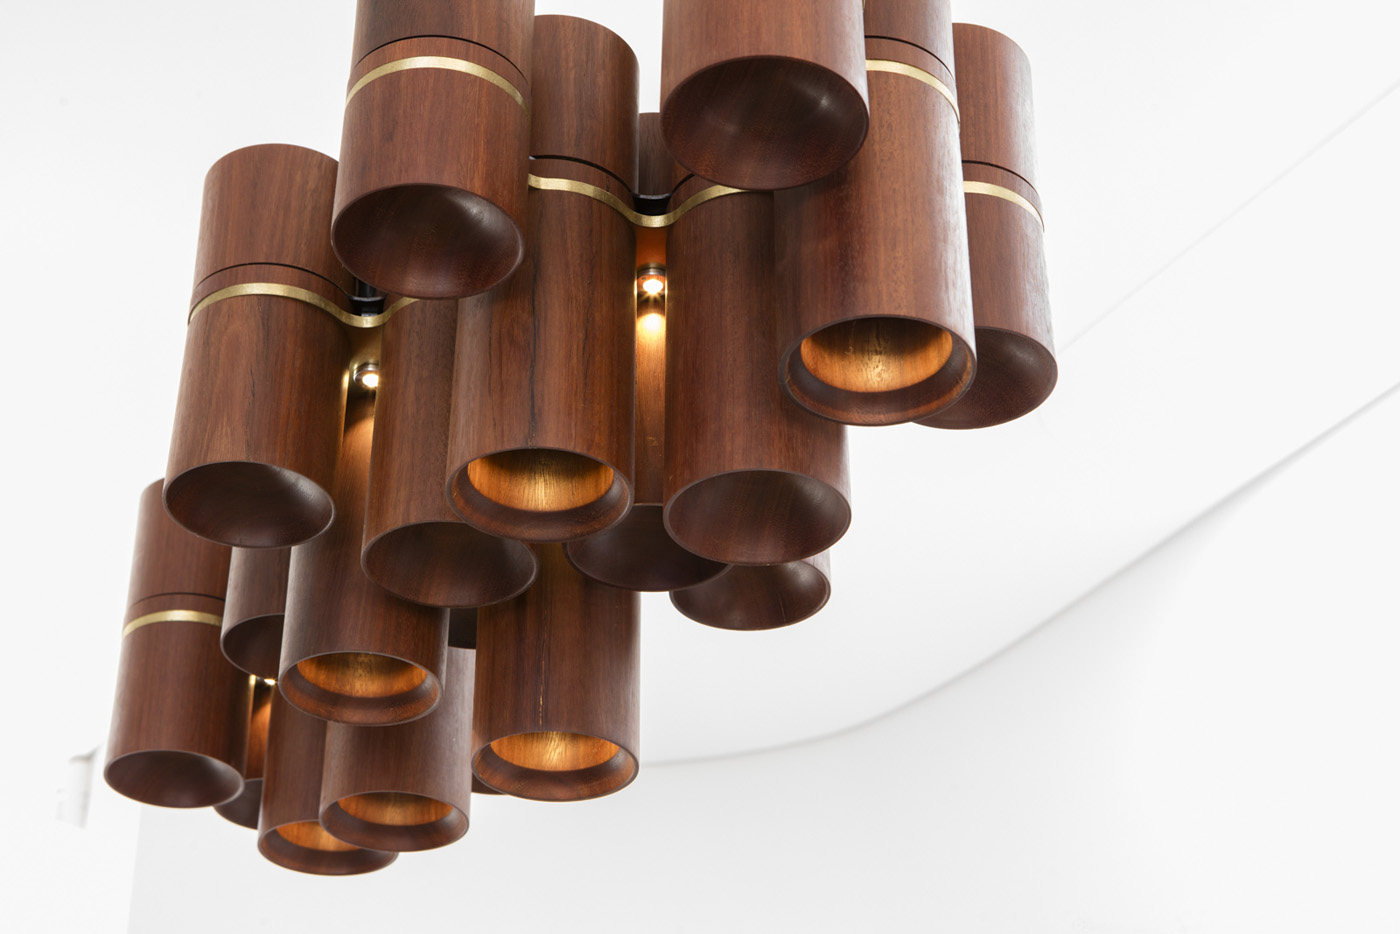 Dover Heights Pendants by award winning Sydney firm Sam Crawford Architects. Detail of recycle timber and brass pendant cluster.